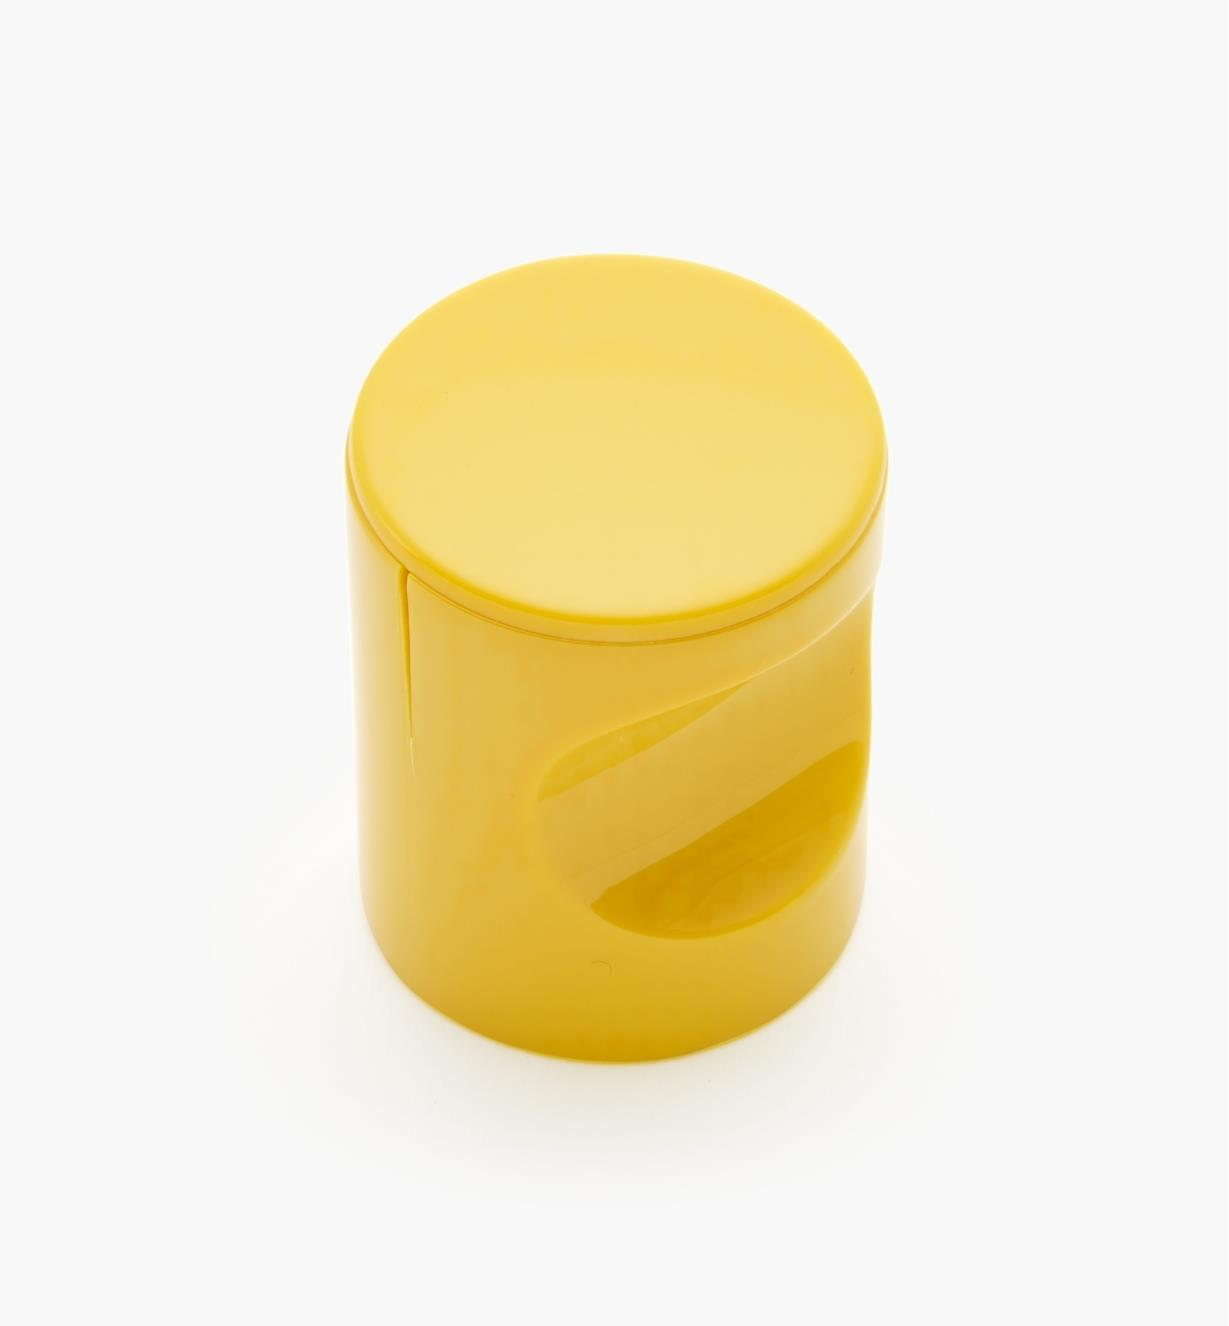 "01W4537 - 23mm x 1 11/16"" Yellow Notched Pull/Knob"